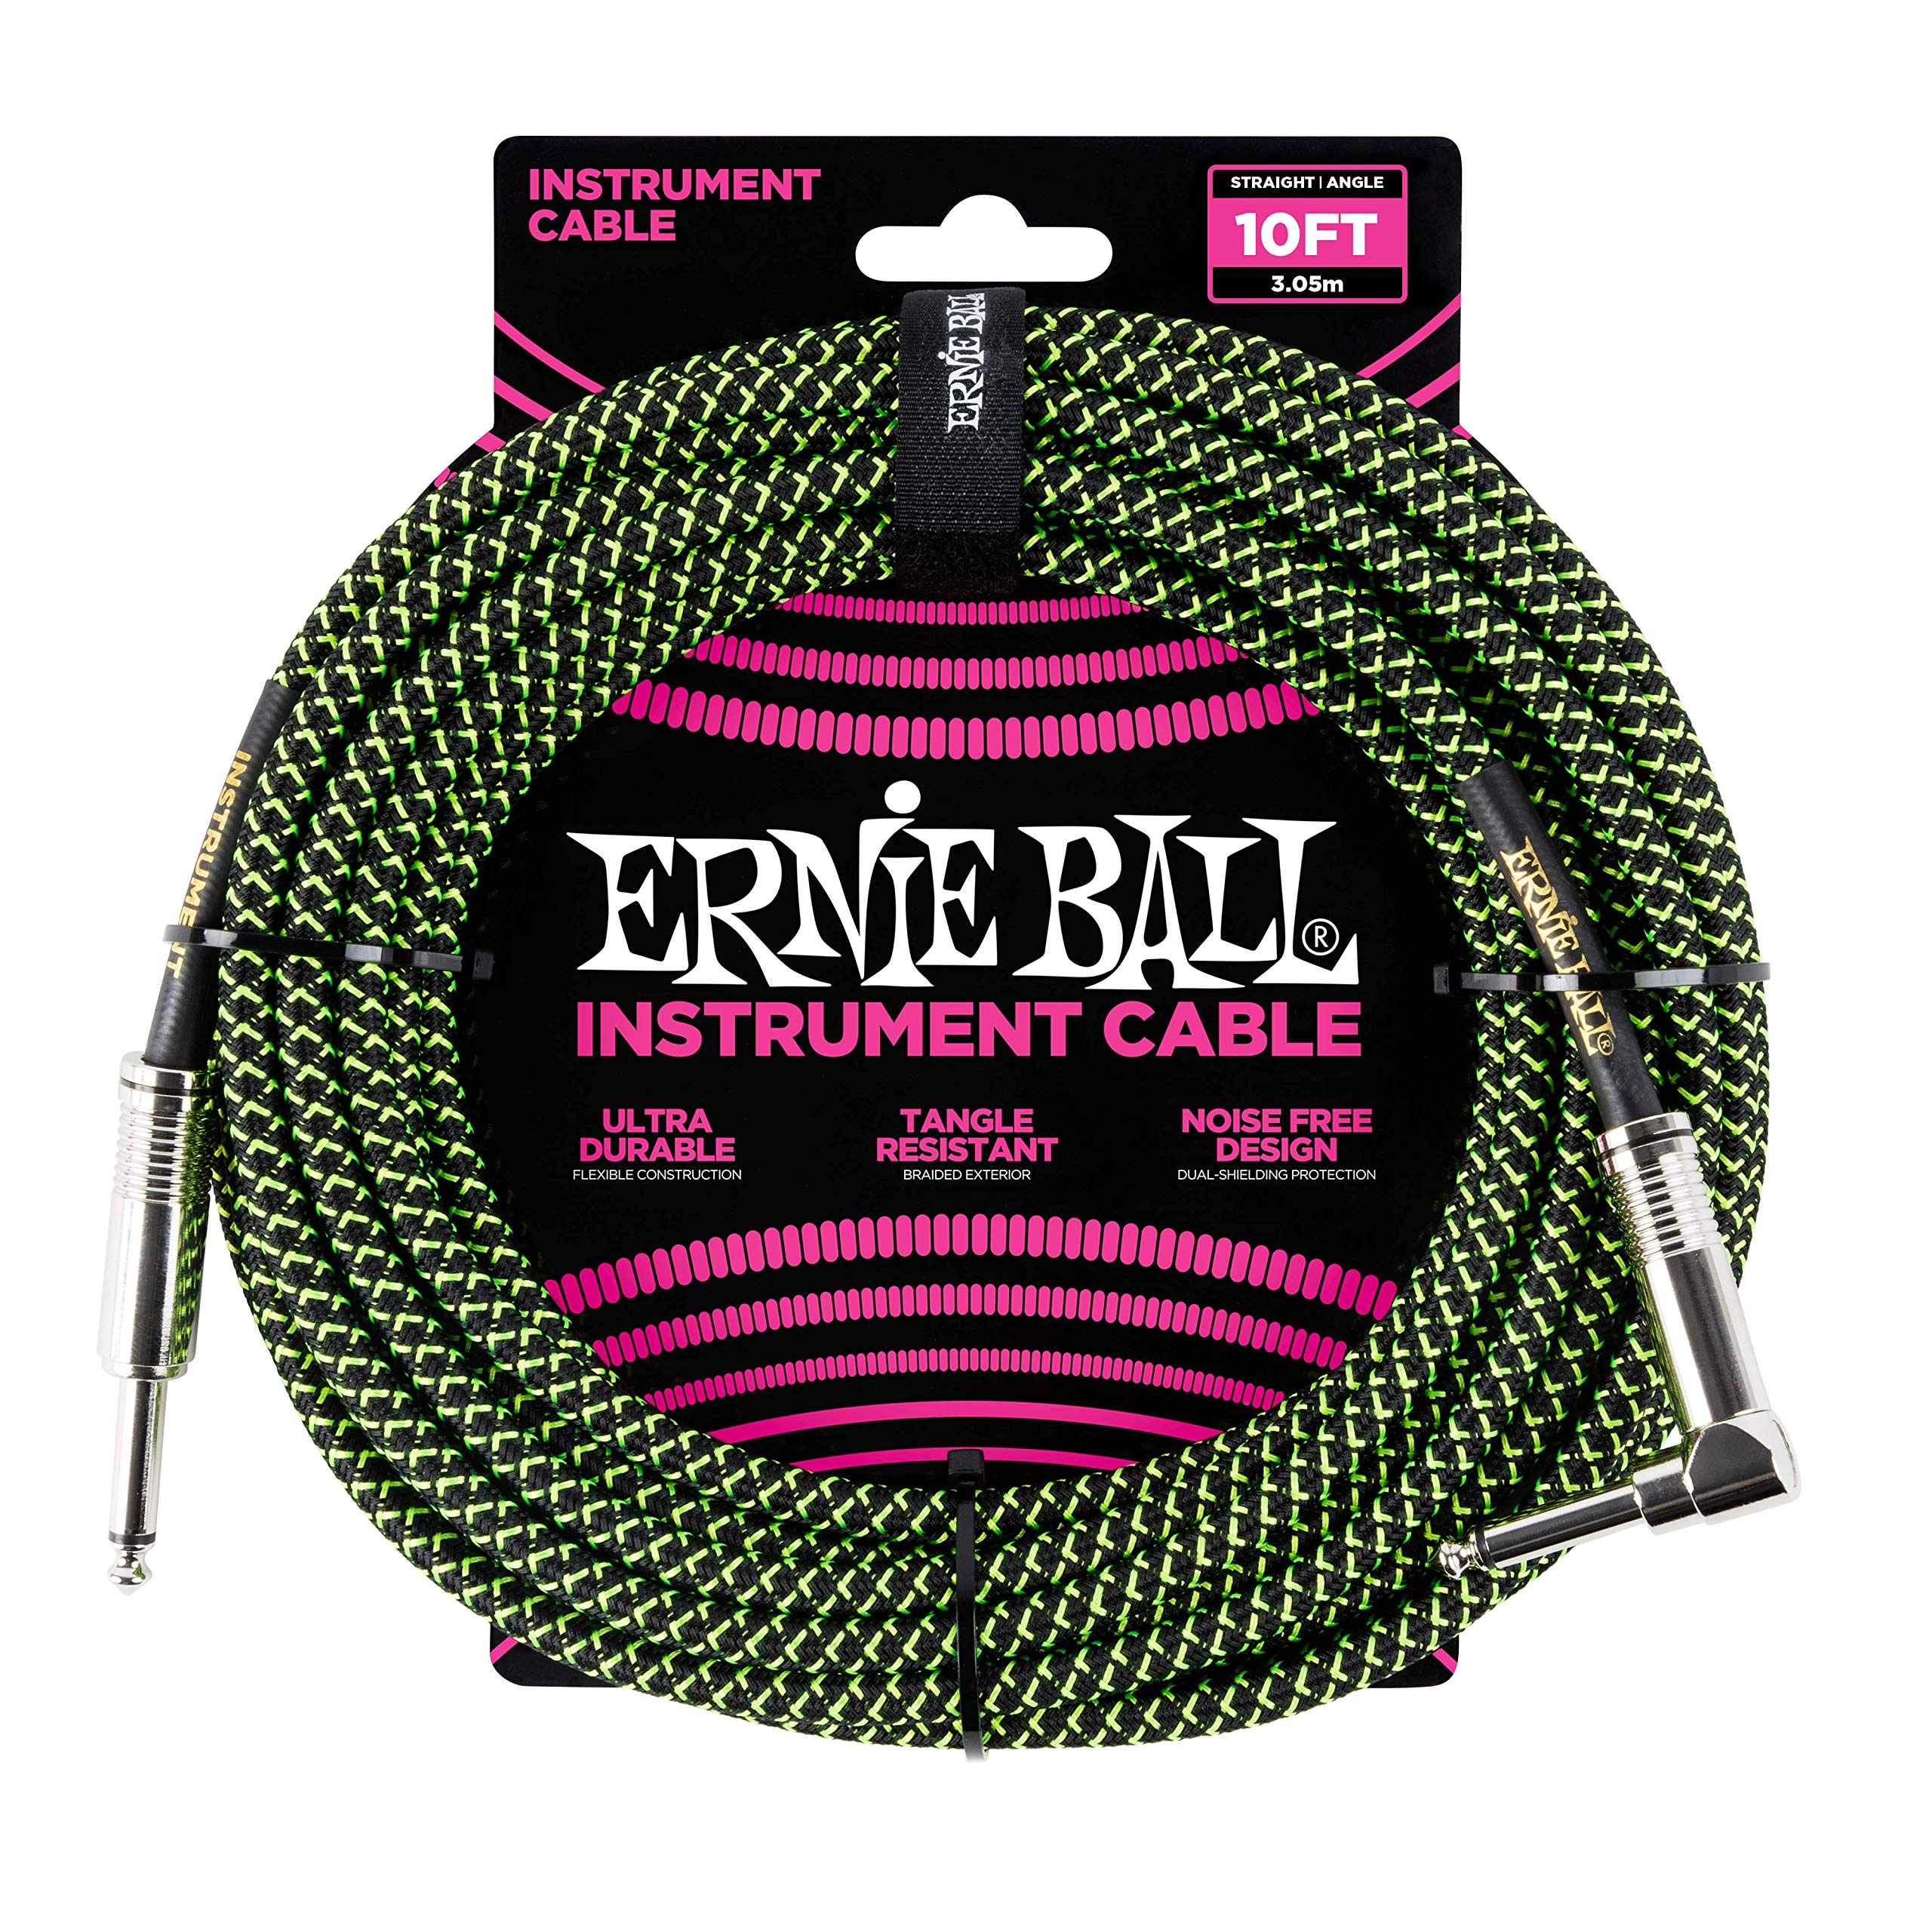 Ernie Ball Instrument Cable Neon Green/Black 10 ft. P06077